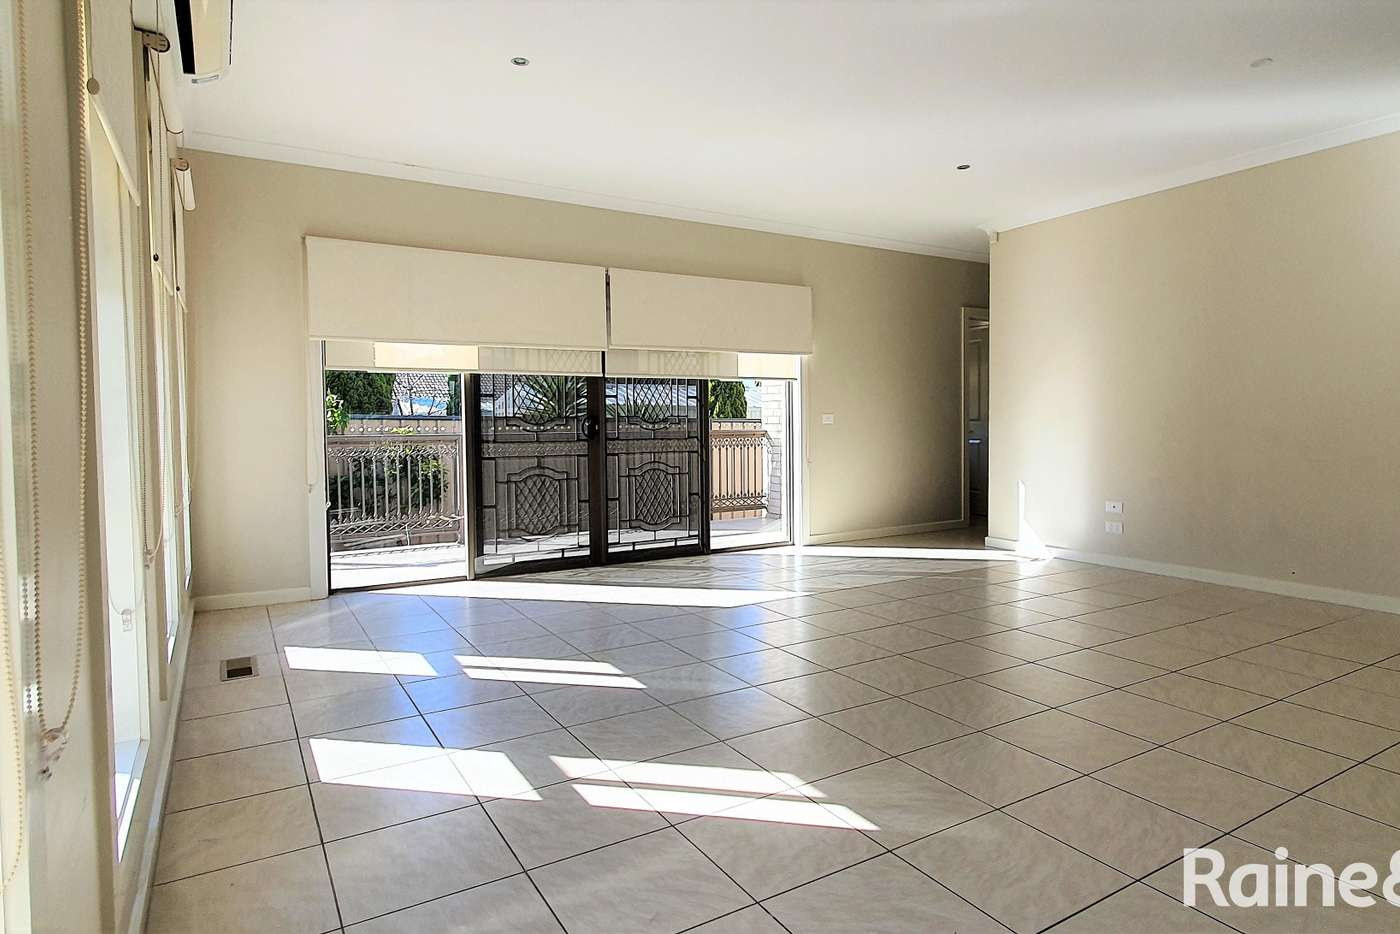 Sixth view of Homely house listing, 2/177 Copernicus Way, Keilor Downs VIC 3038